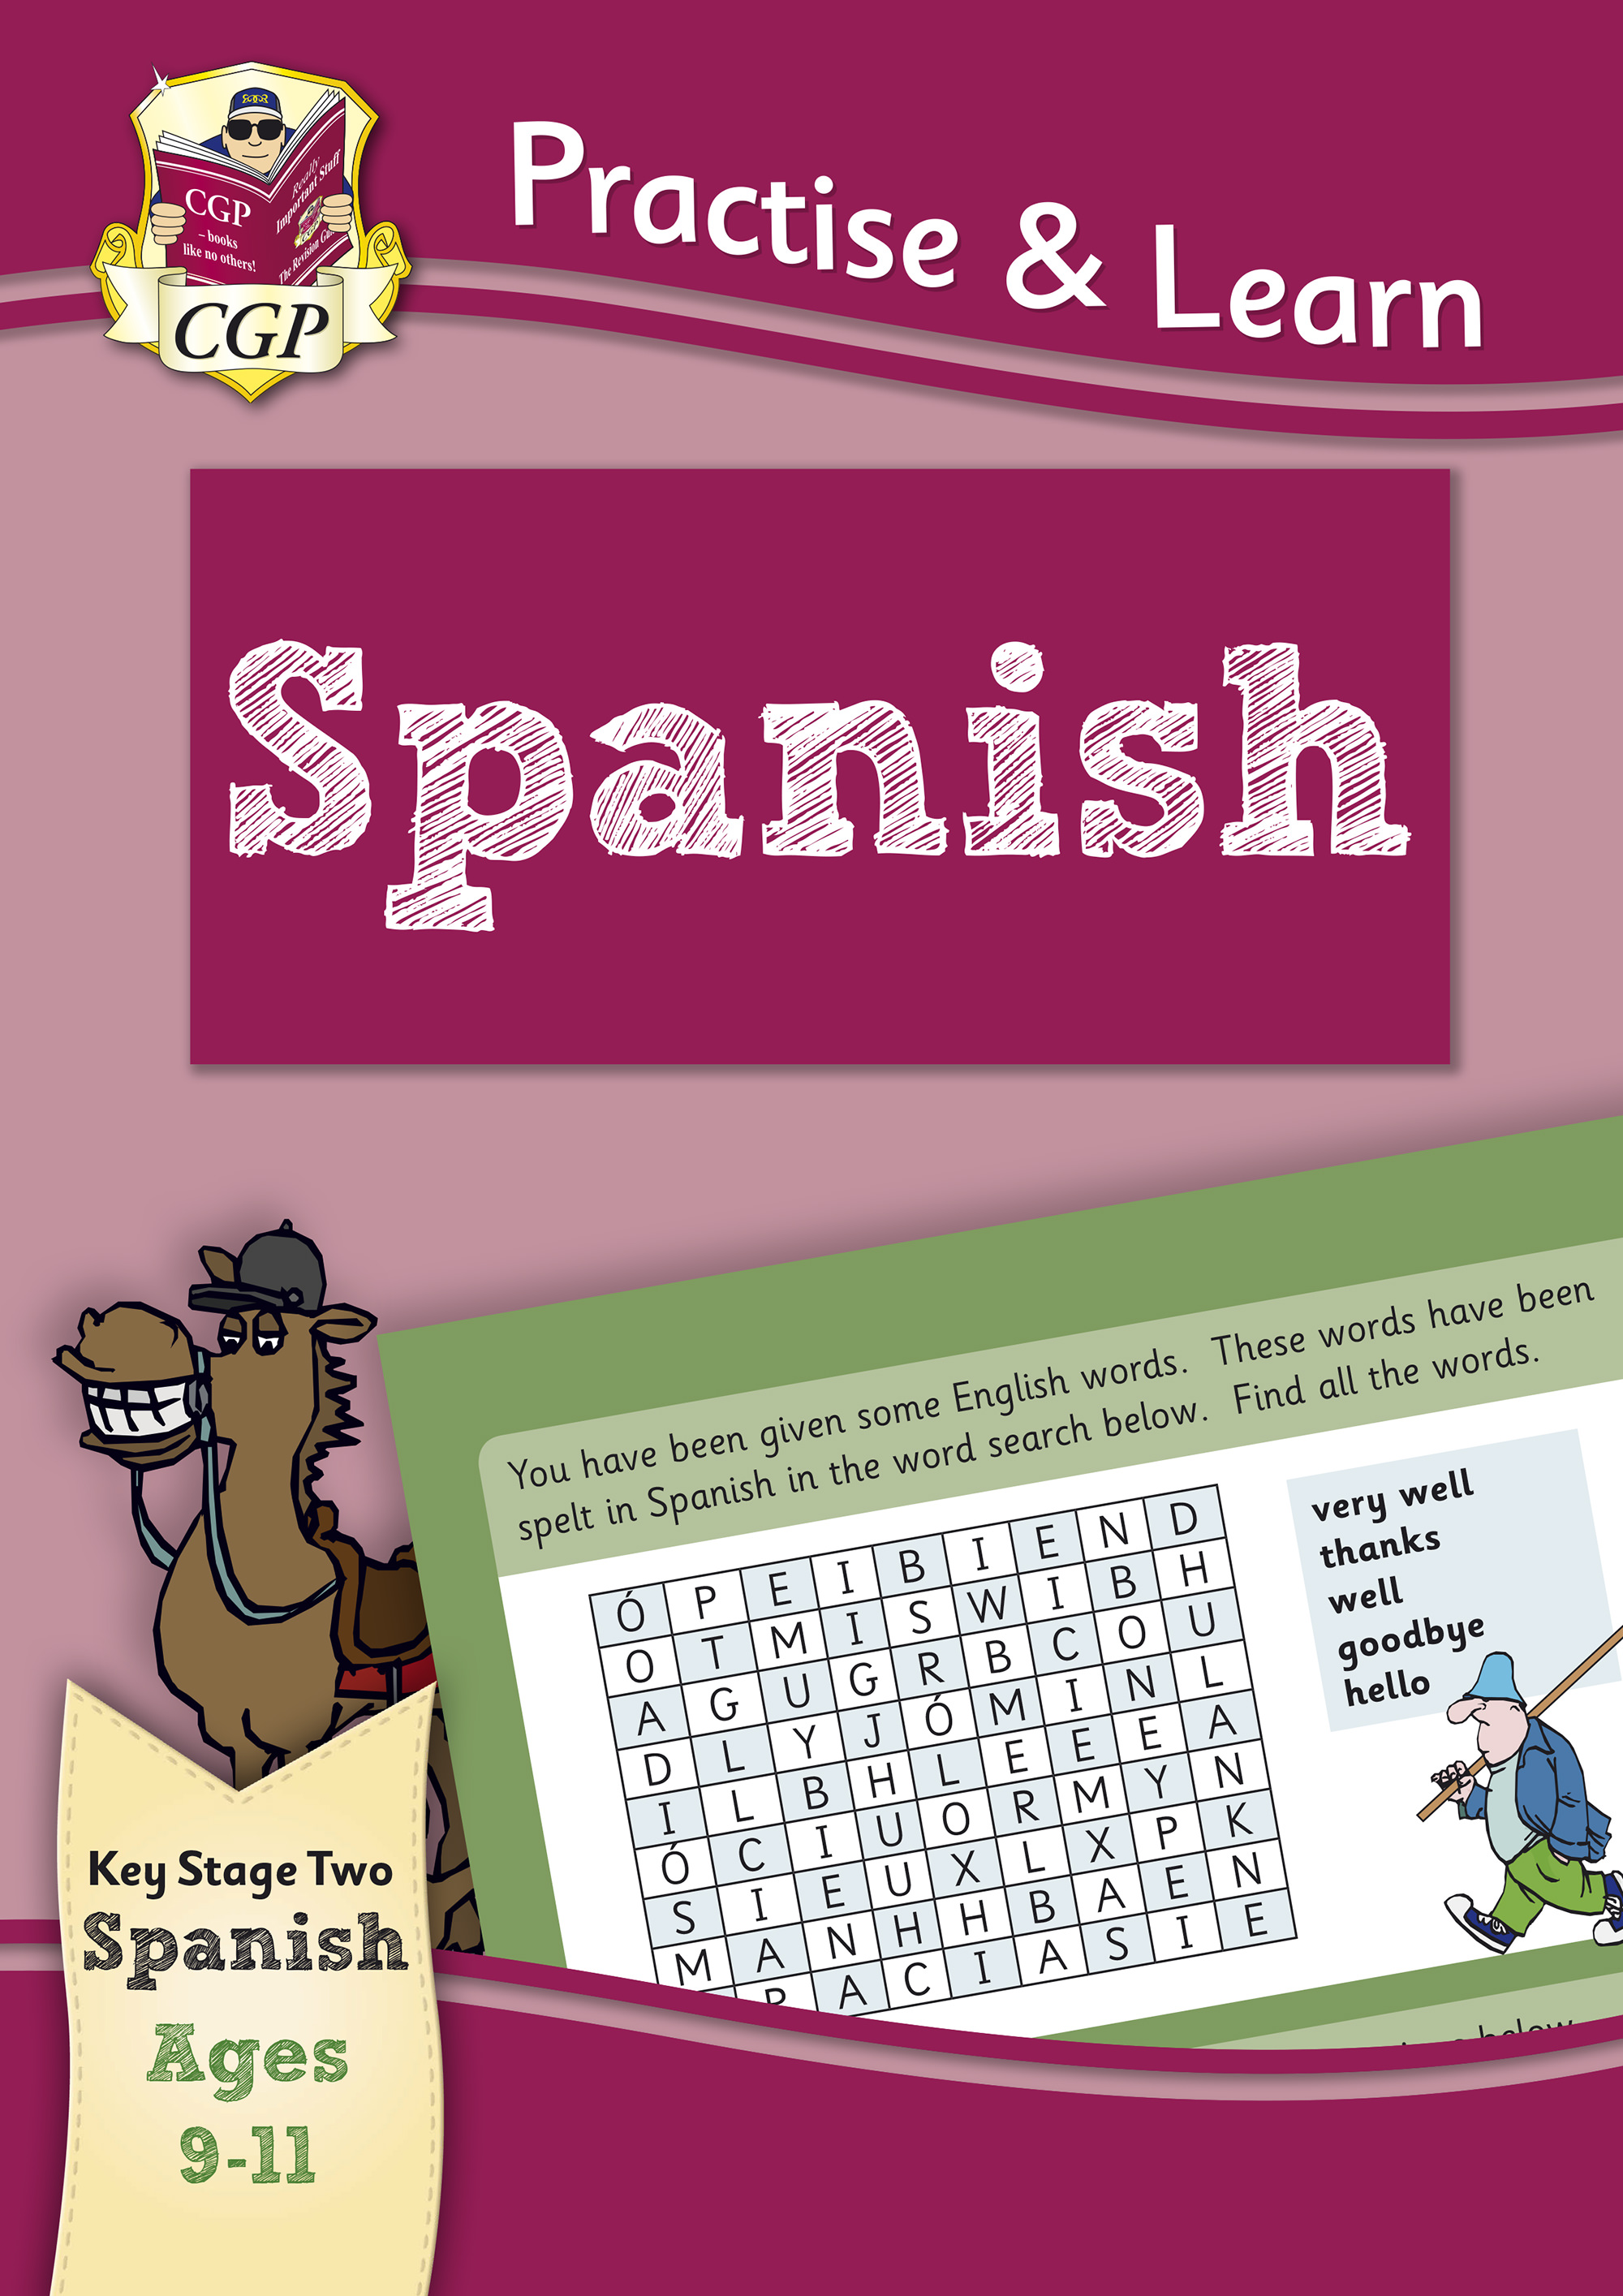 SPP6Q22DK - Practise & Learn: Spanish for Ages 9-11 Online Edition